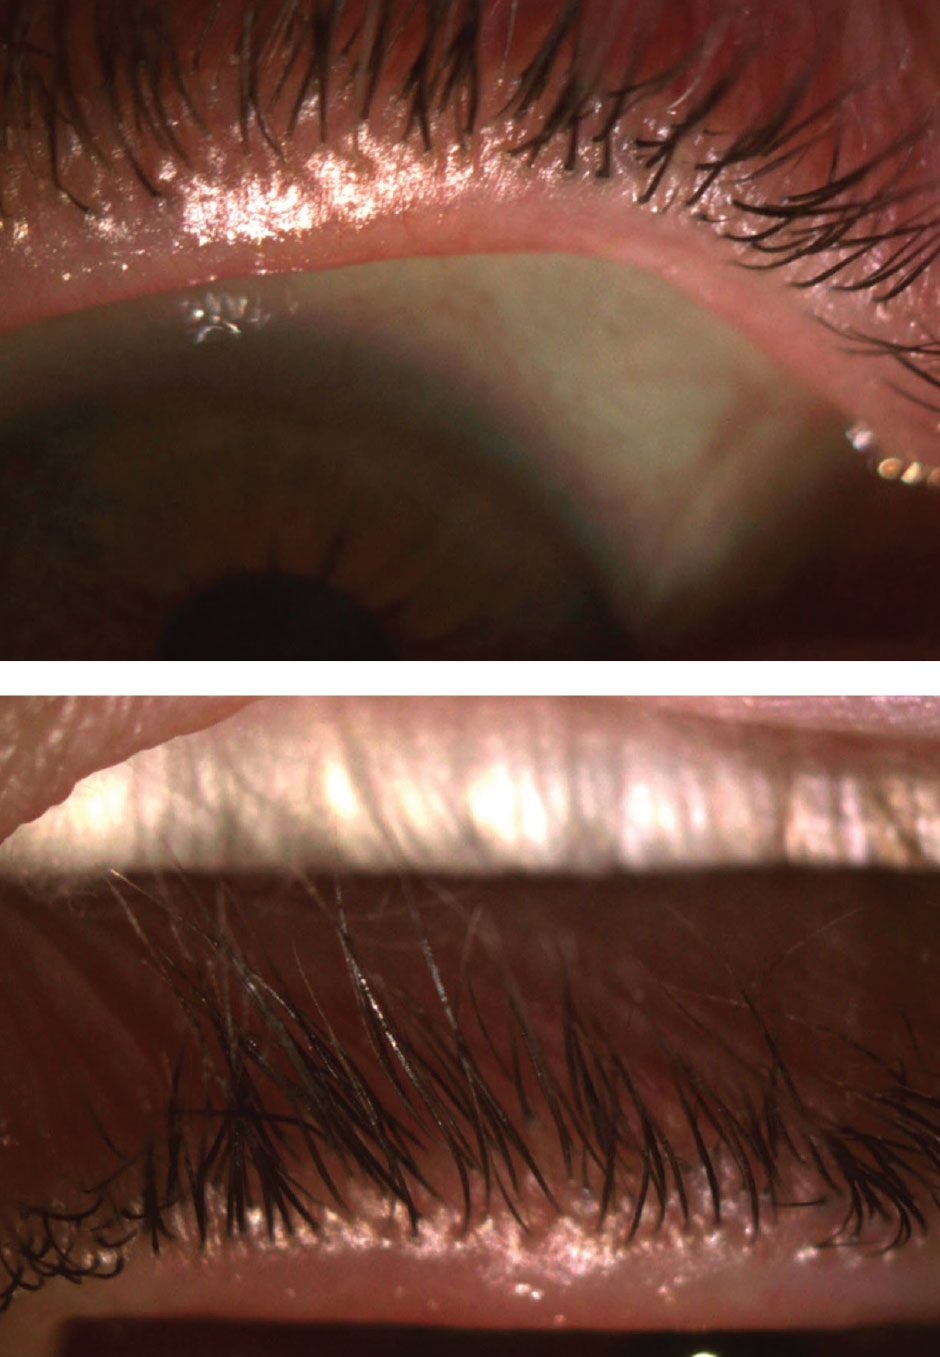 After discontinuing contact lens wear for a week, the patient's lashes were still pouted (OD on the top).